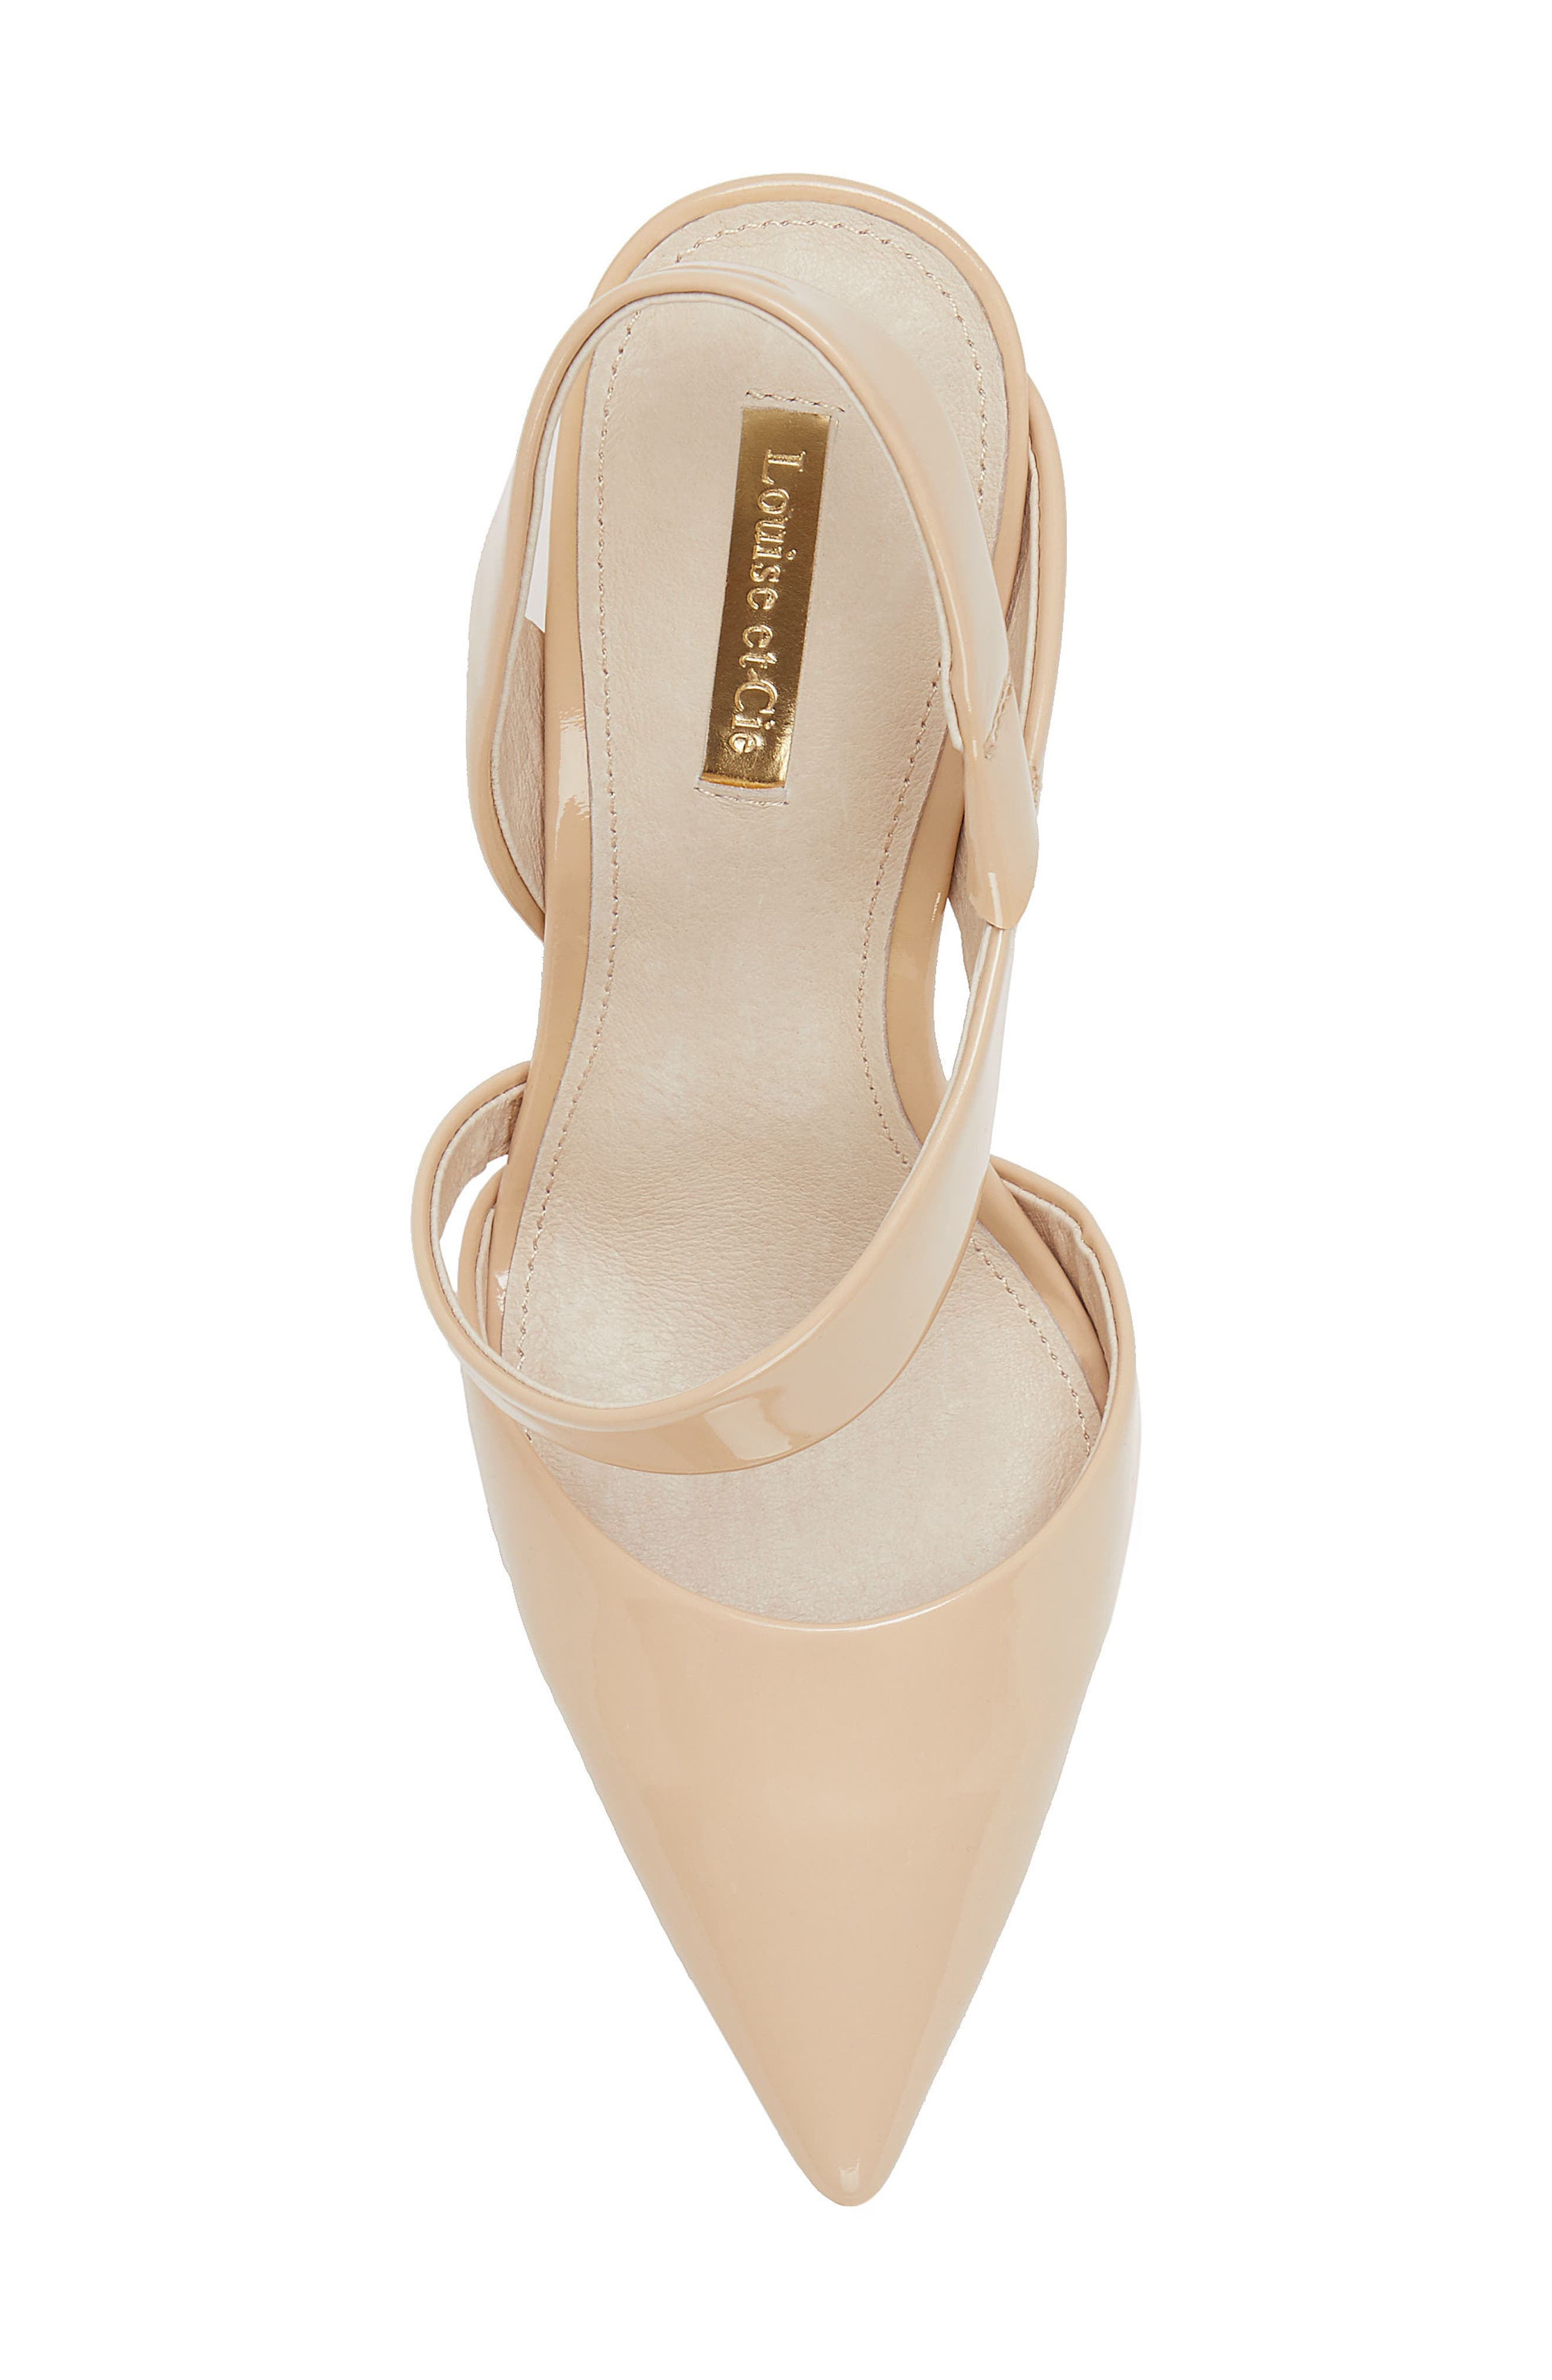 Jerry Pointy Toe Slingback Pump,                             Alternate thumbnail 5, color,                             Odessa Patent